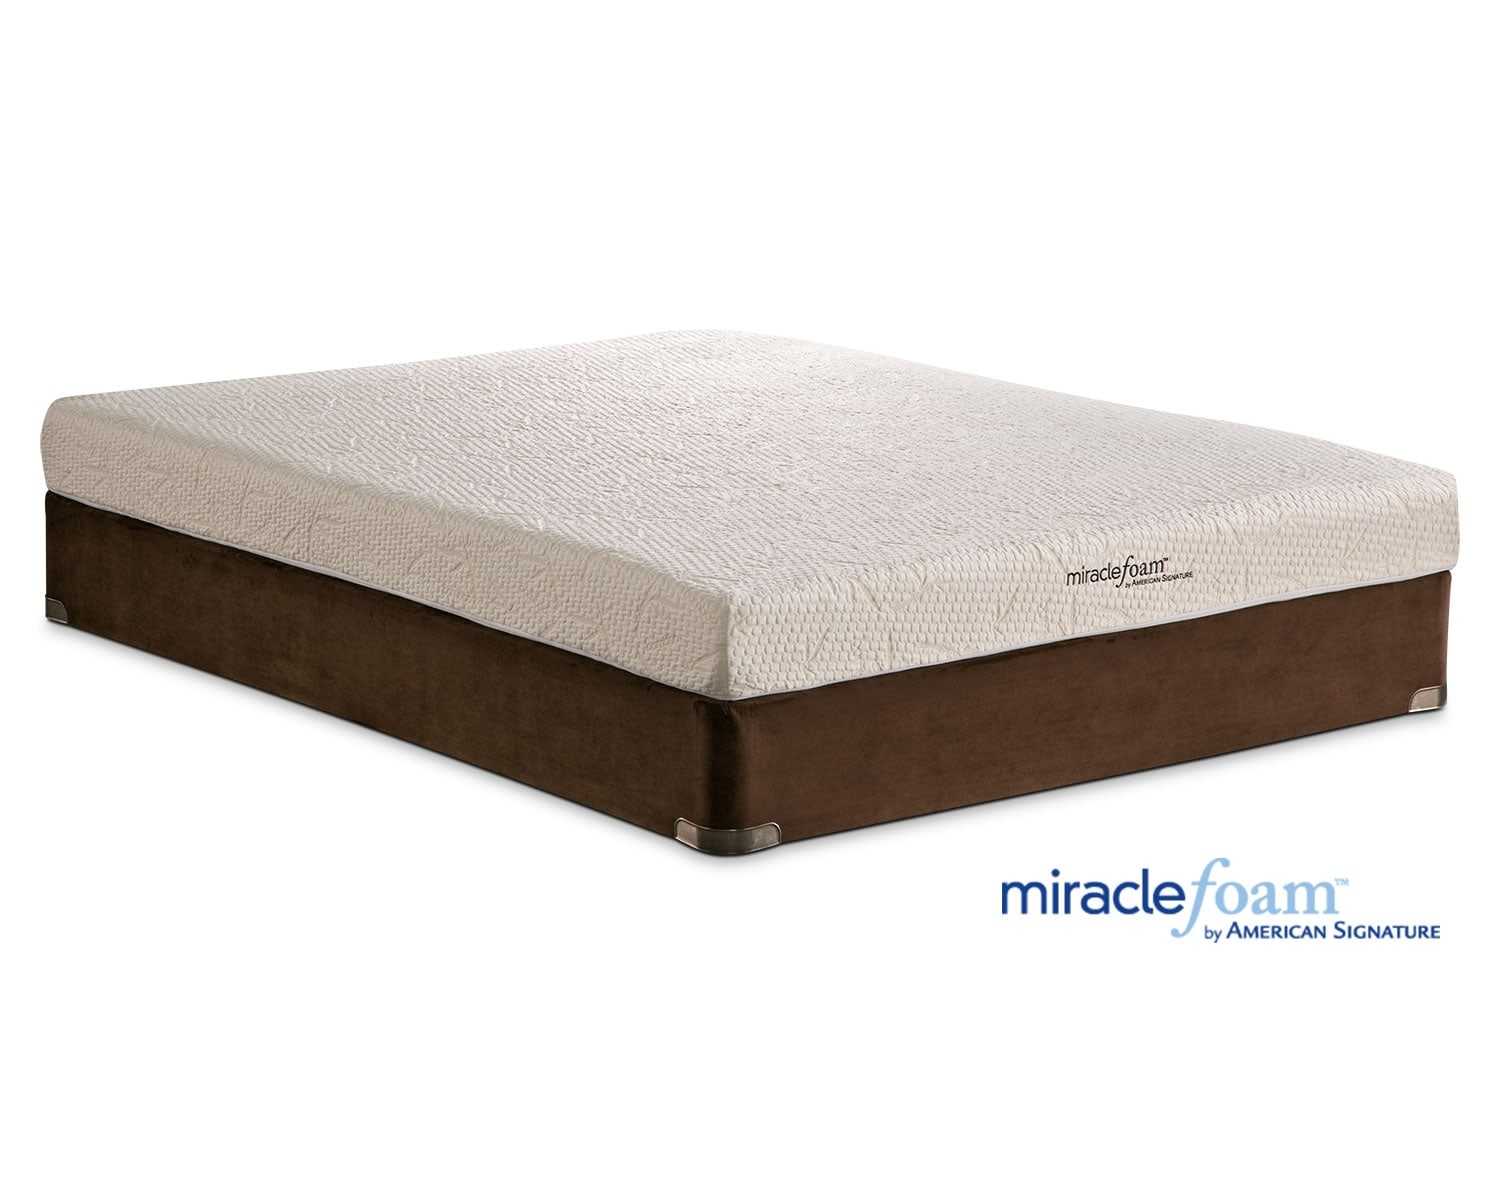 The Renew Medium Firm Mattress Collection